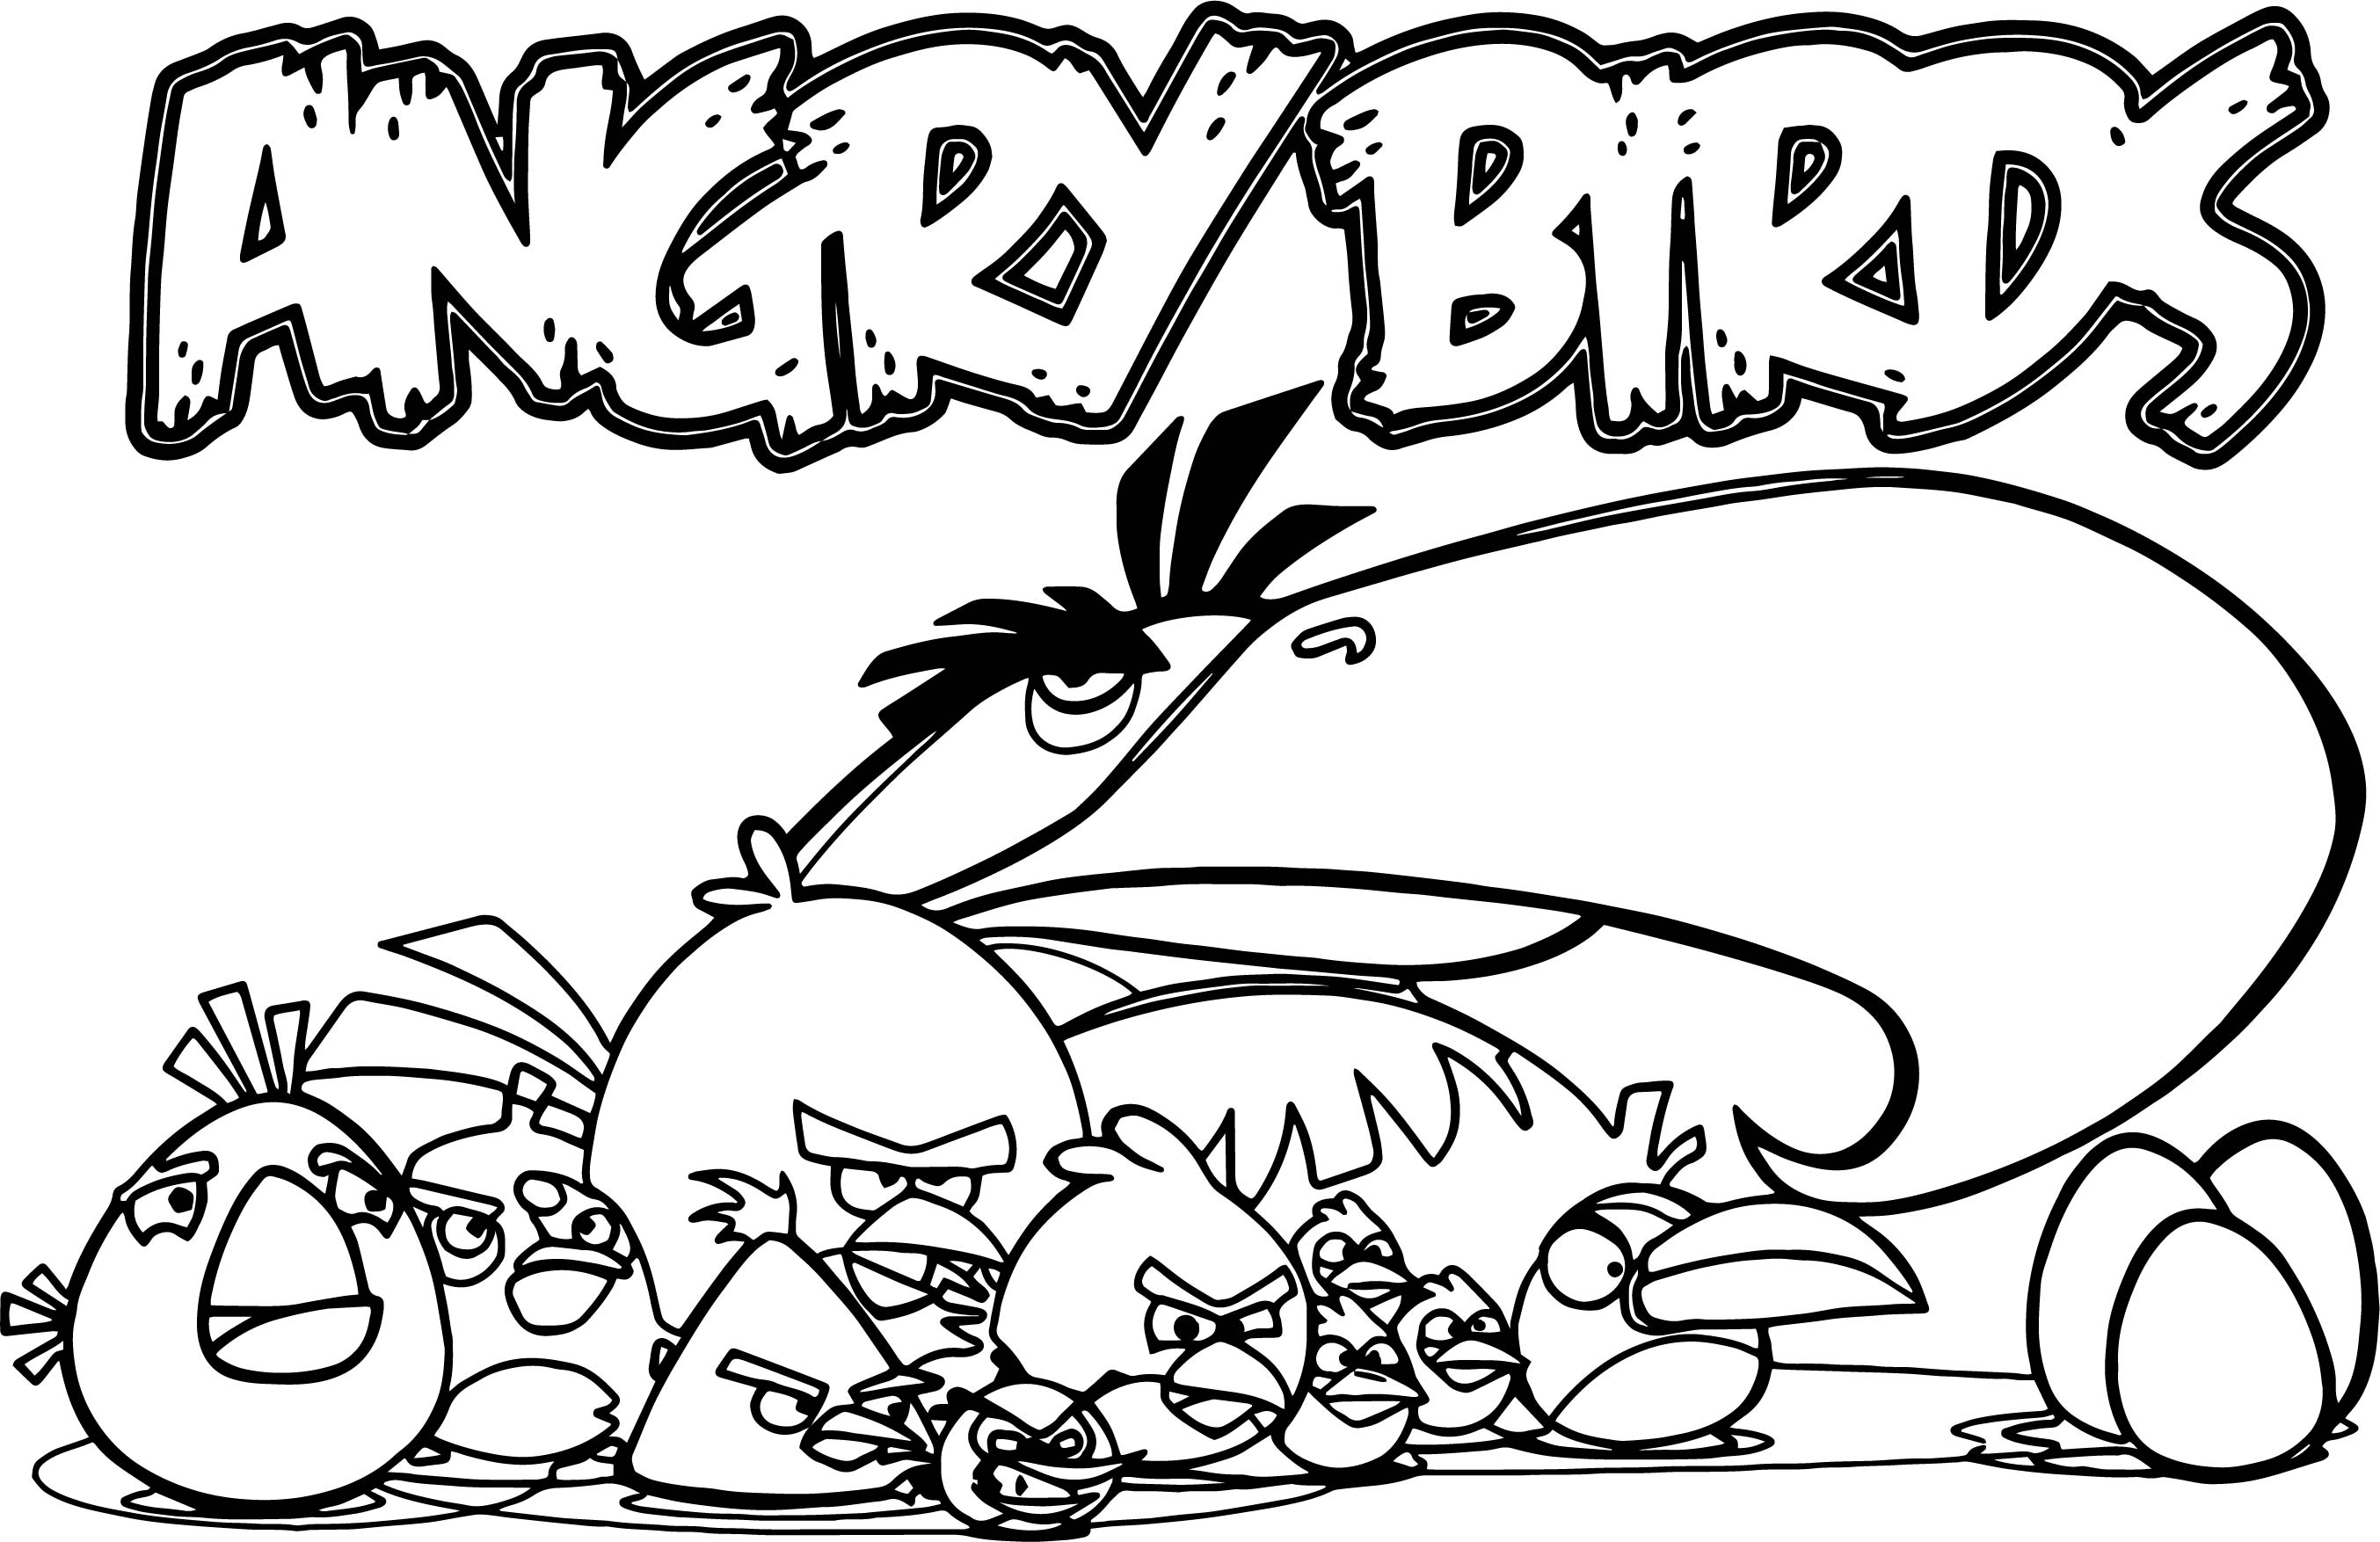 Angry birds group coloring page for Angry birds rio coloring pages